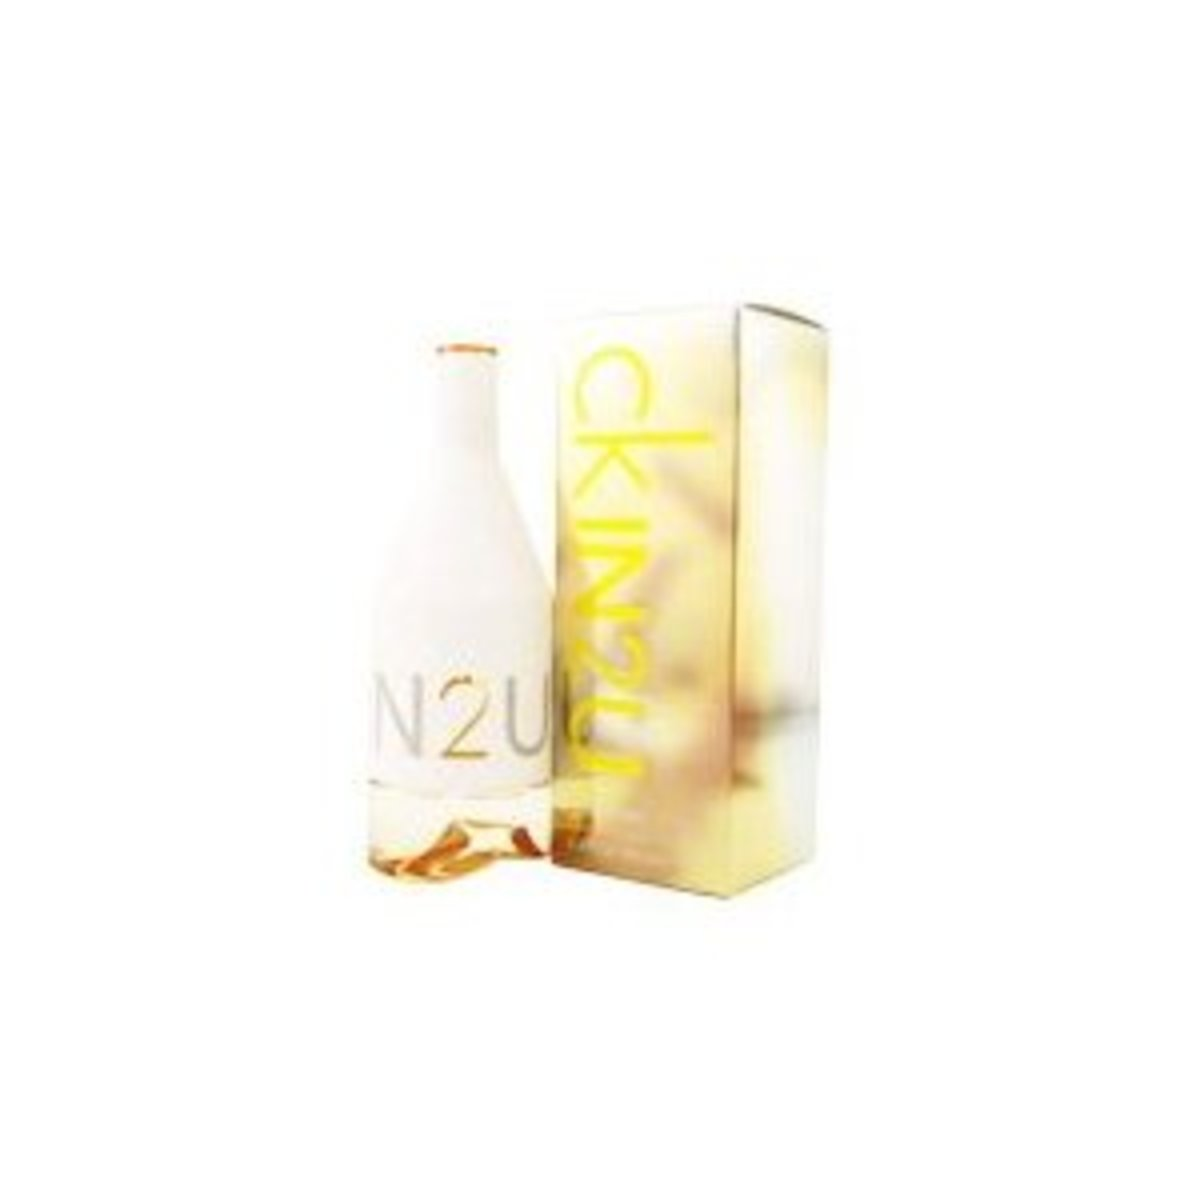 CK IN2U Perfume for Women